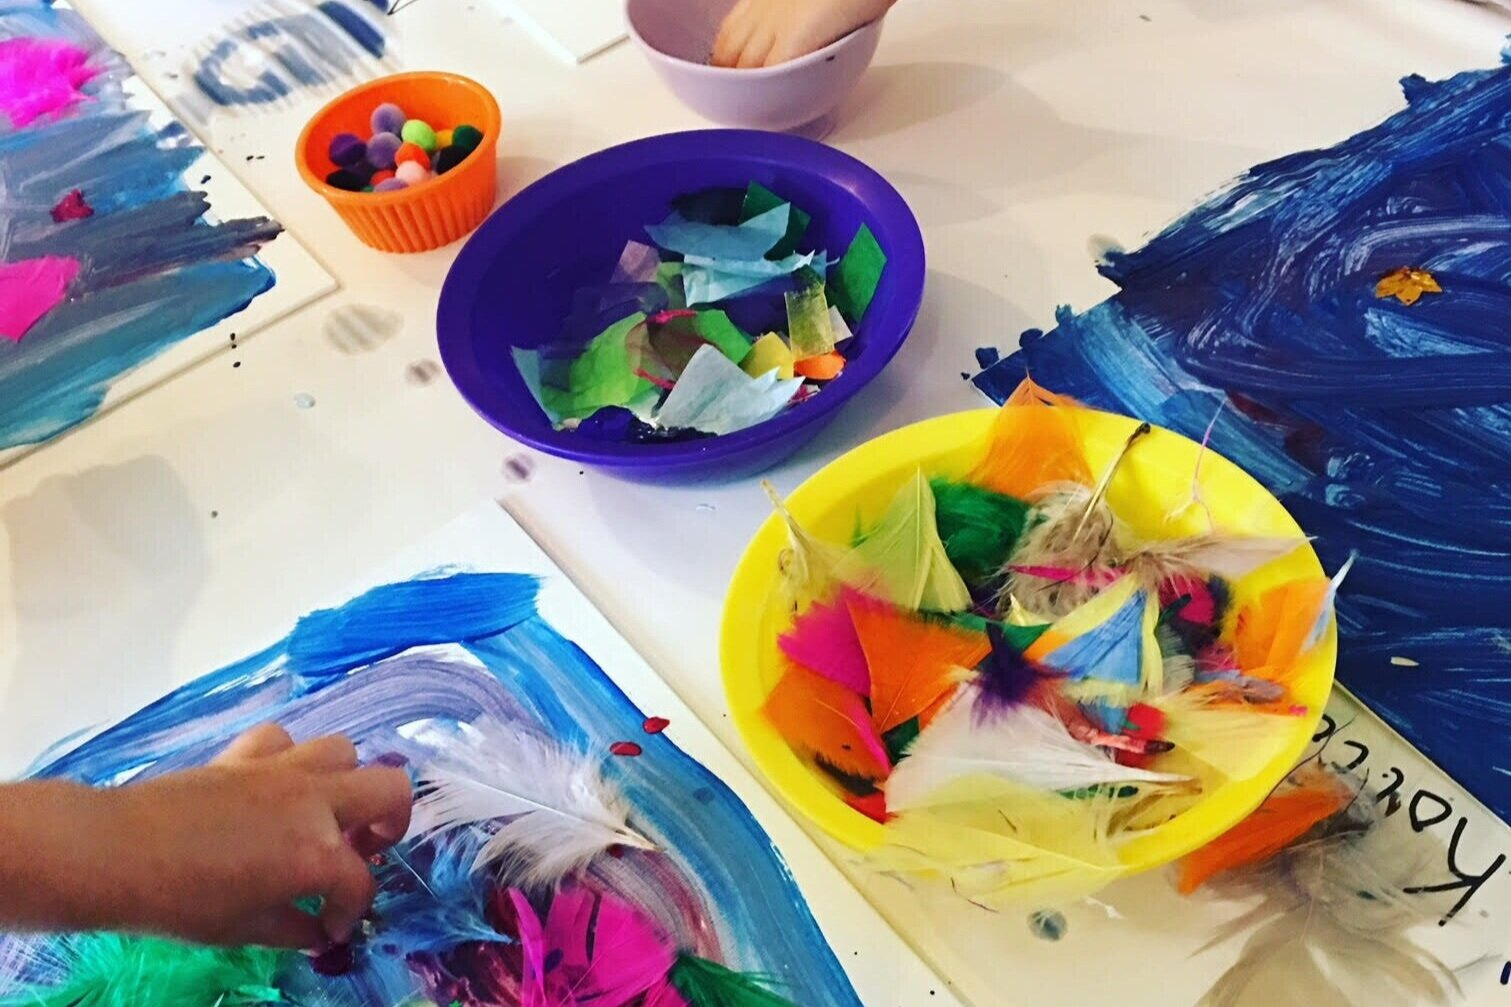 Paint & Collage Birthday Party - Little artists blend painting & collage using unexpected materials, creating richly textured canvas pieces.